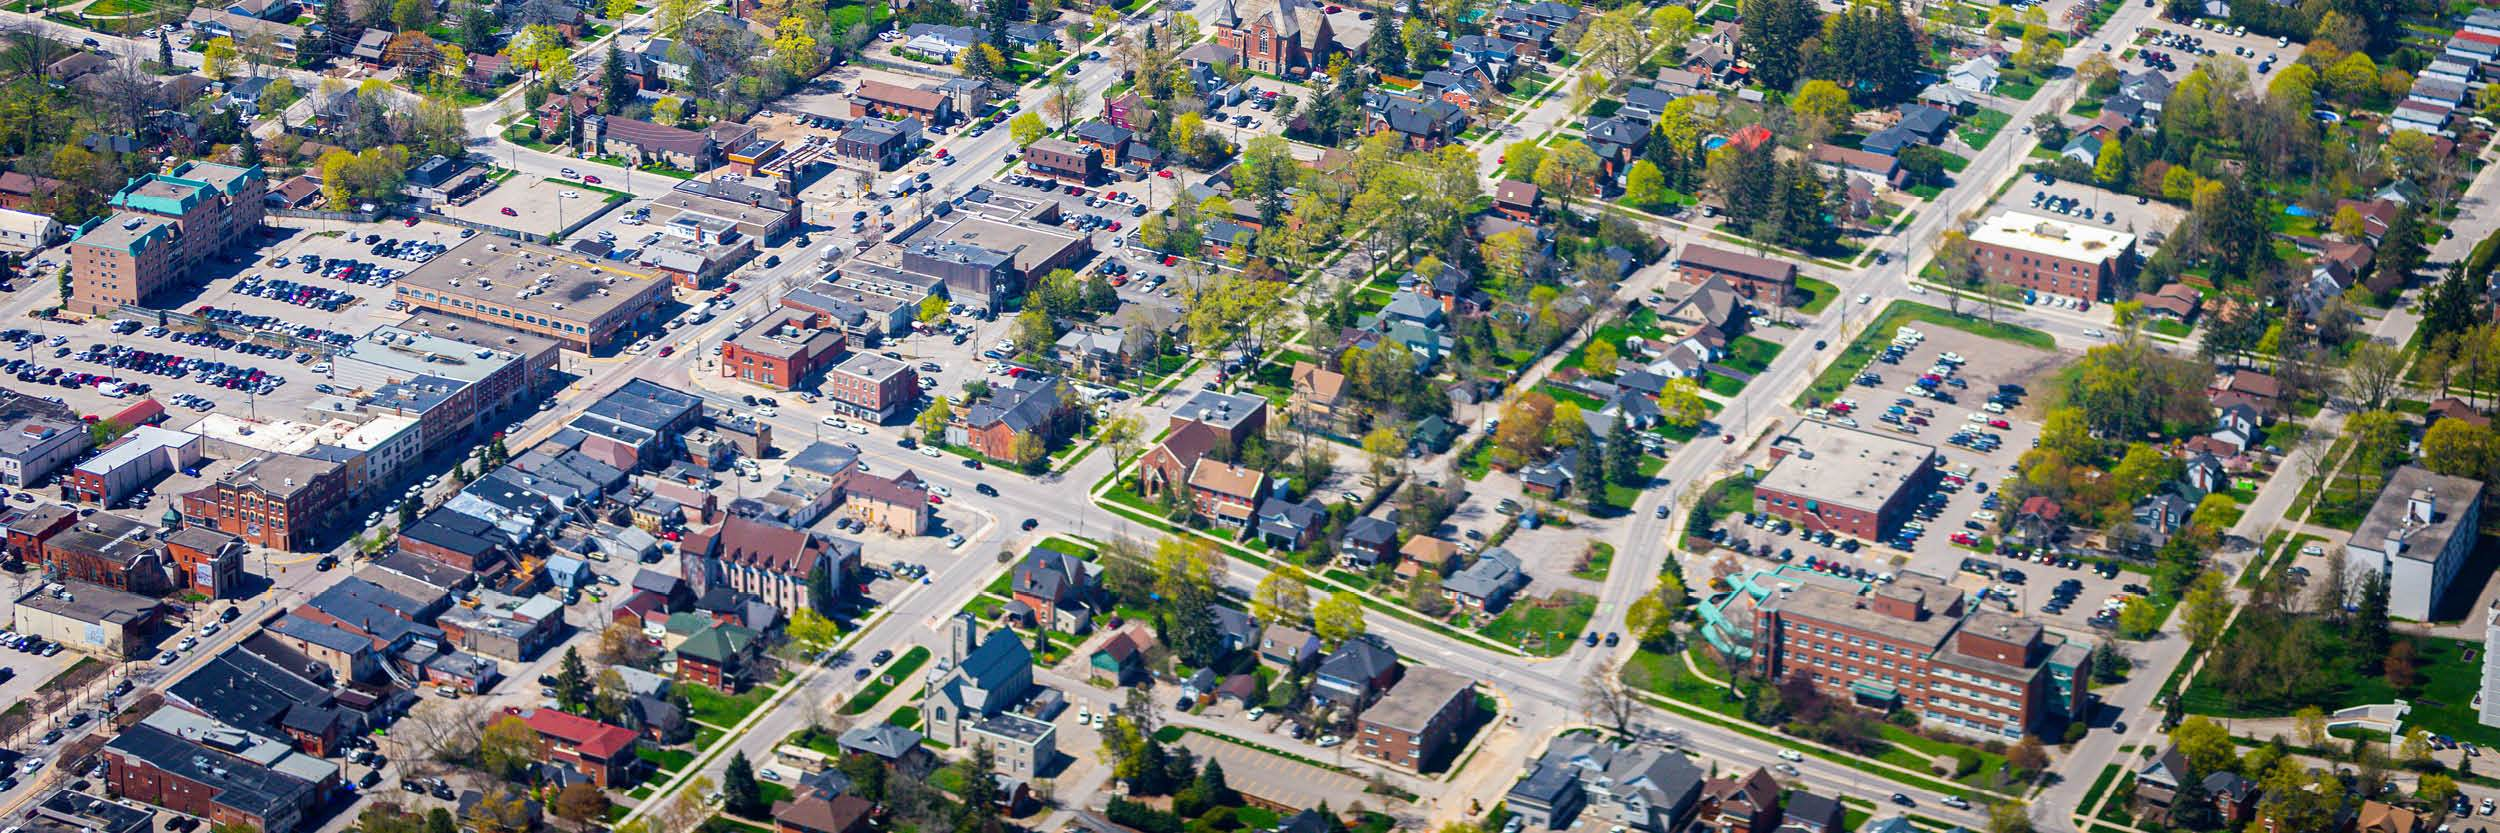 Aerial view of commercial buildings in Orangeville